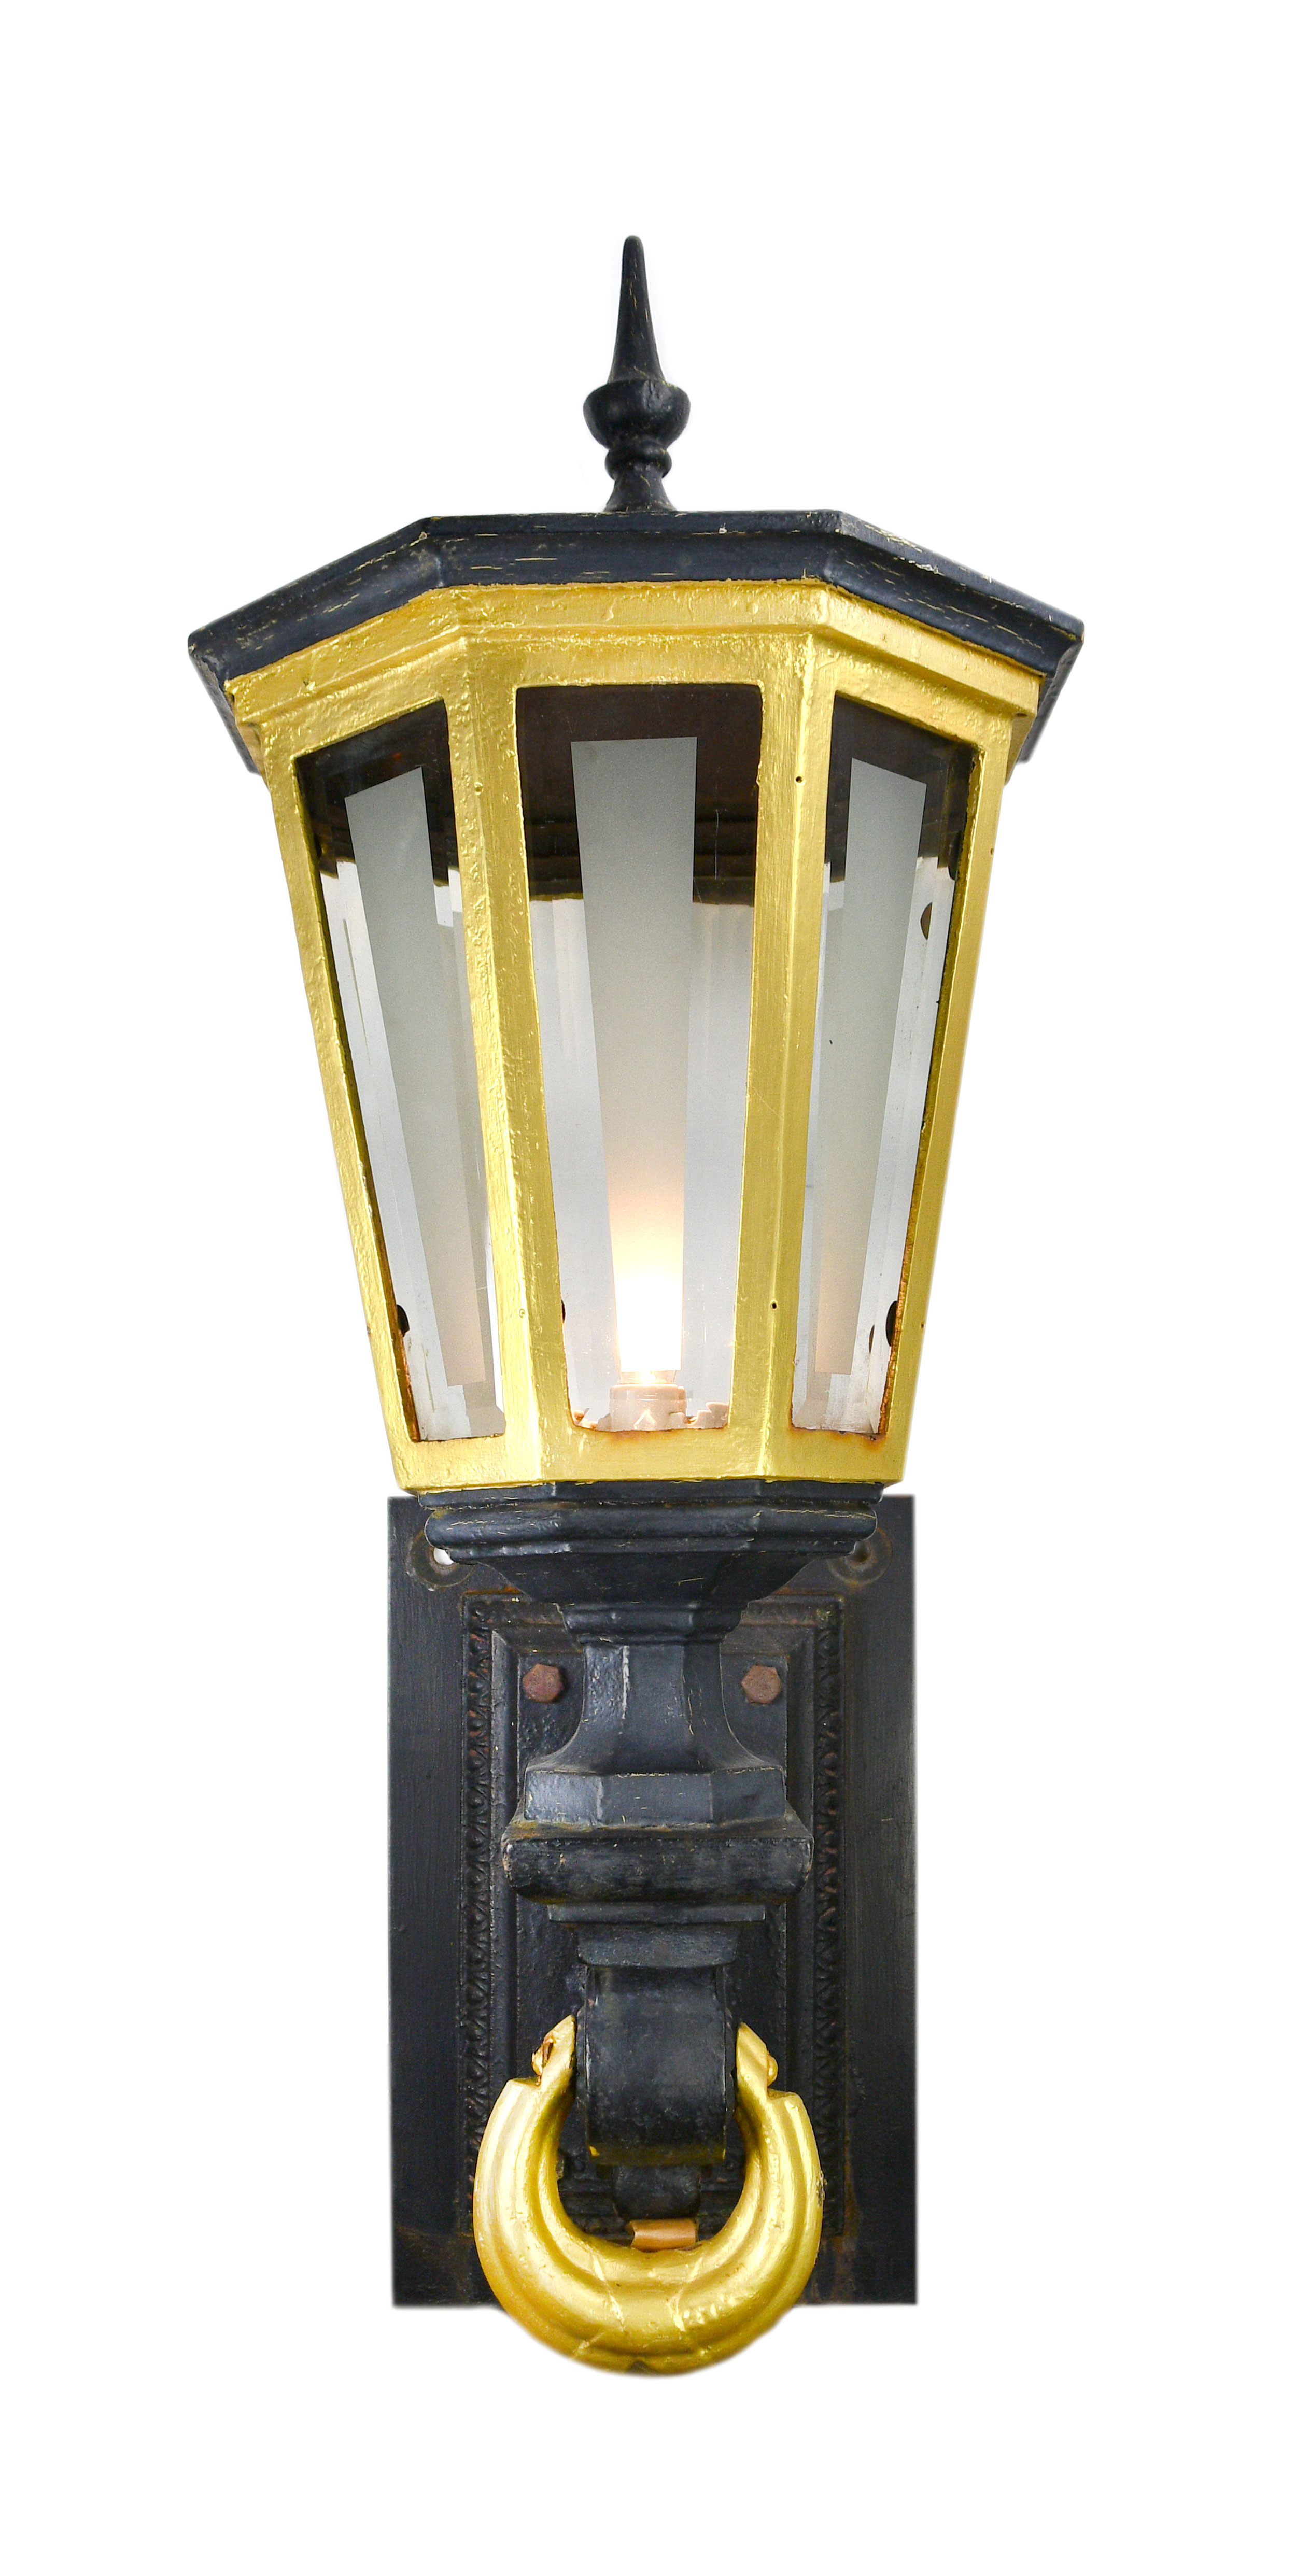 large-exterior-sconce-5.jpg